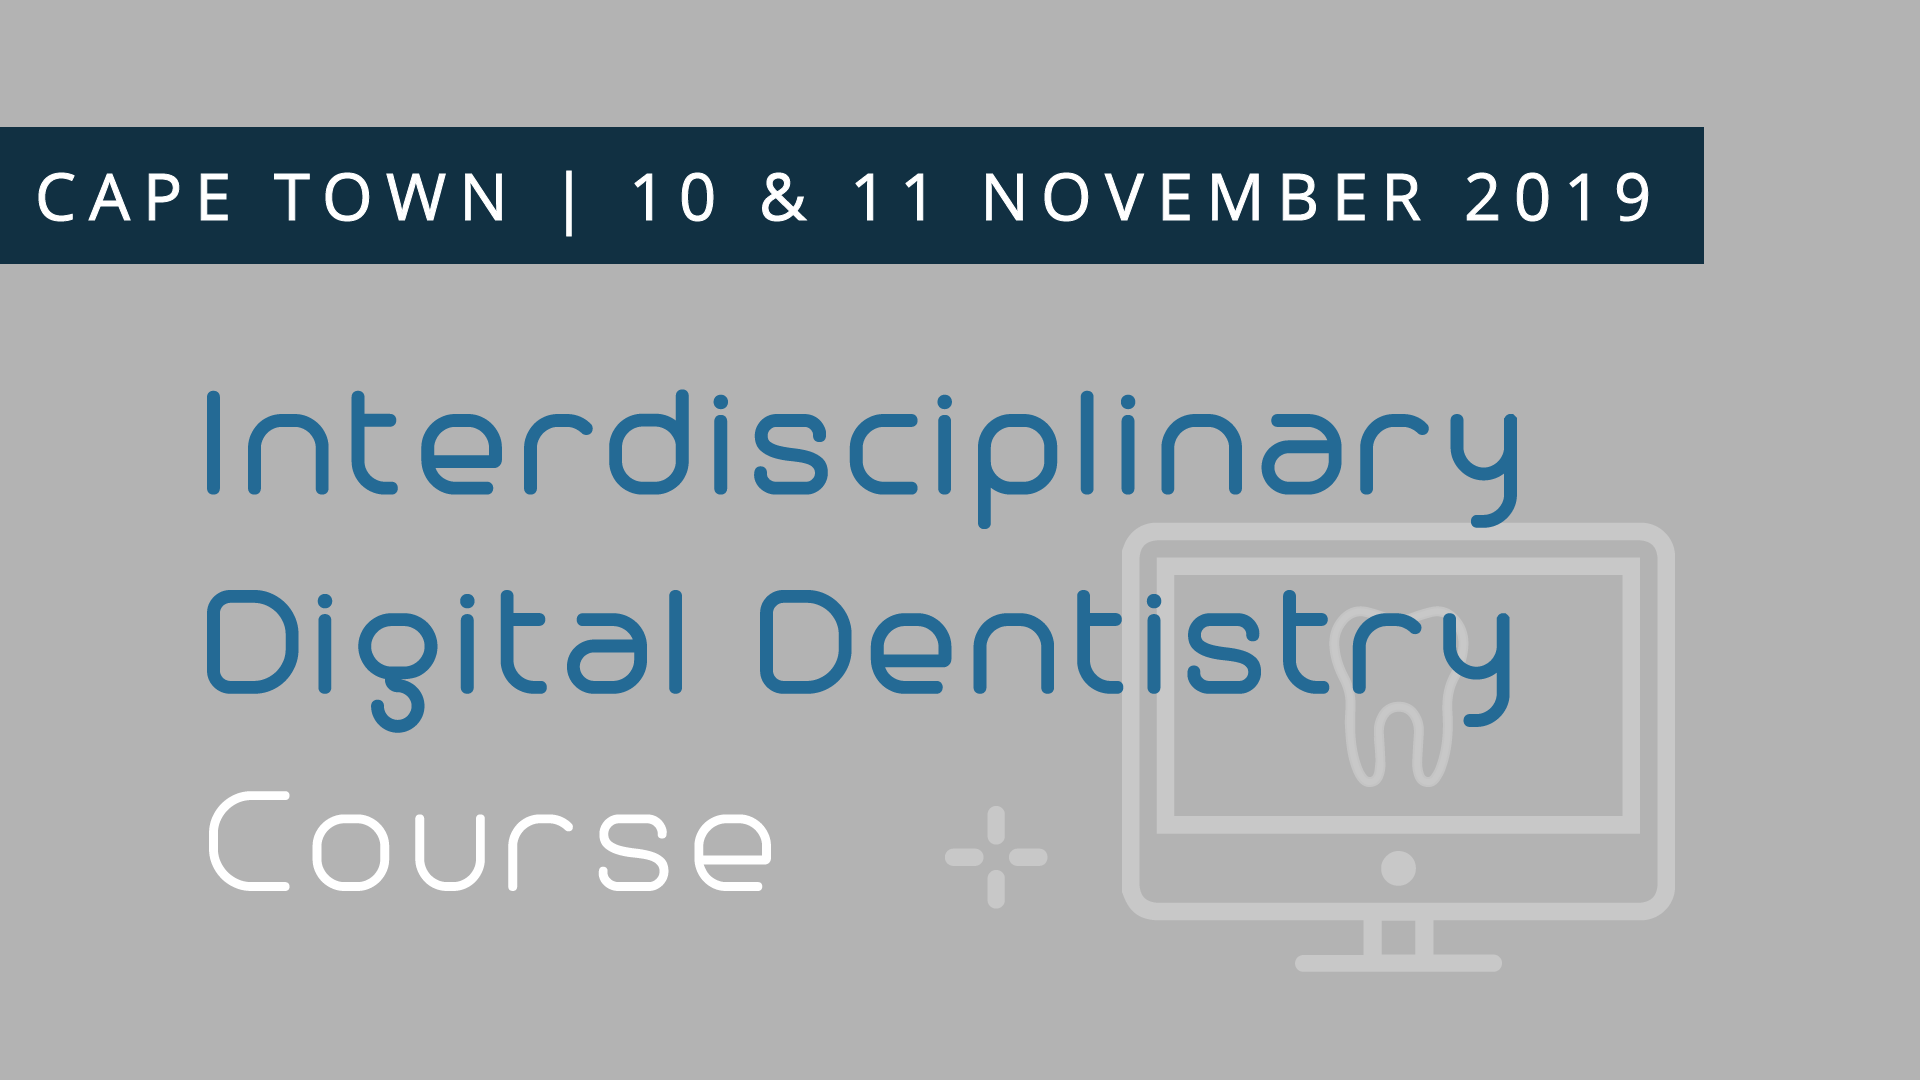 Interdisciplinary Digital Dentistry Course